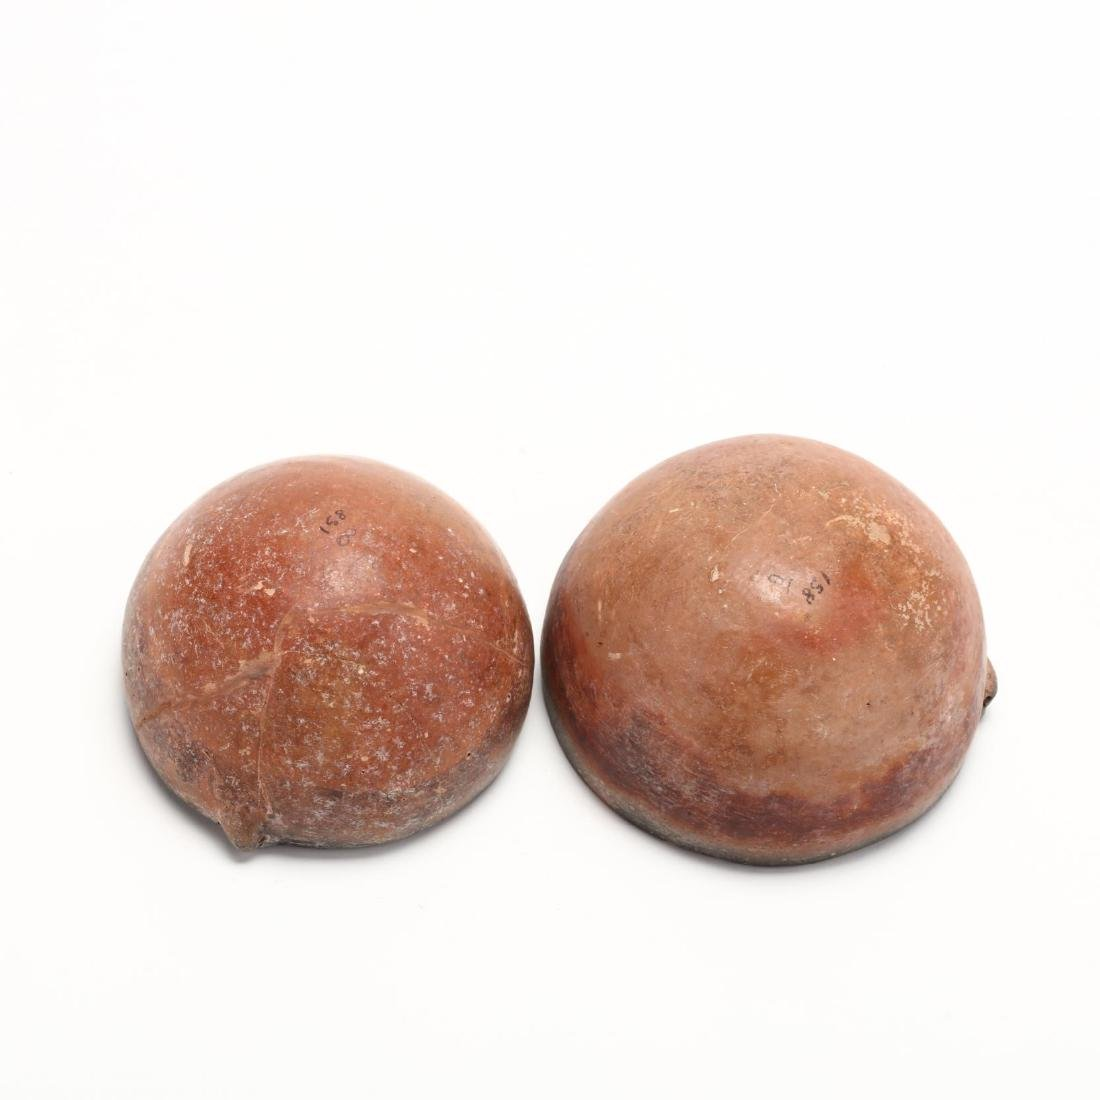 Two Cypriot Bronze Age Polished Red Ware Bowls - 6